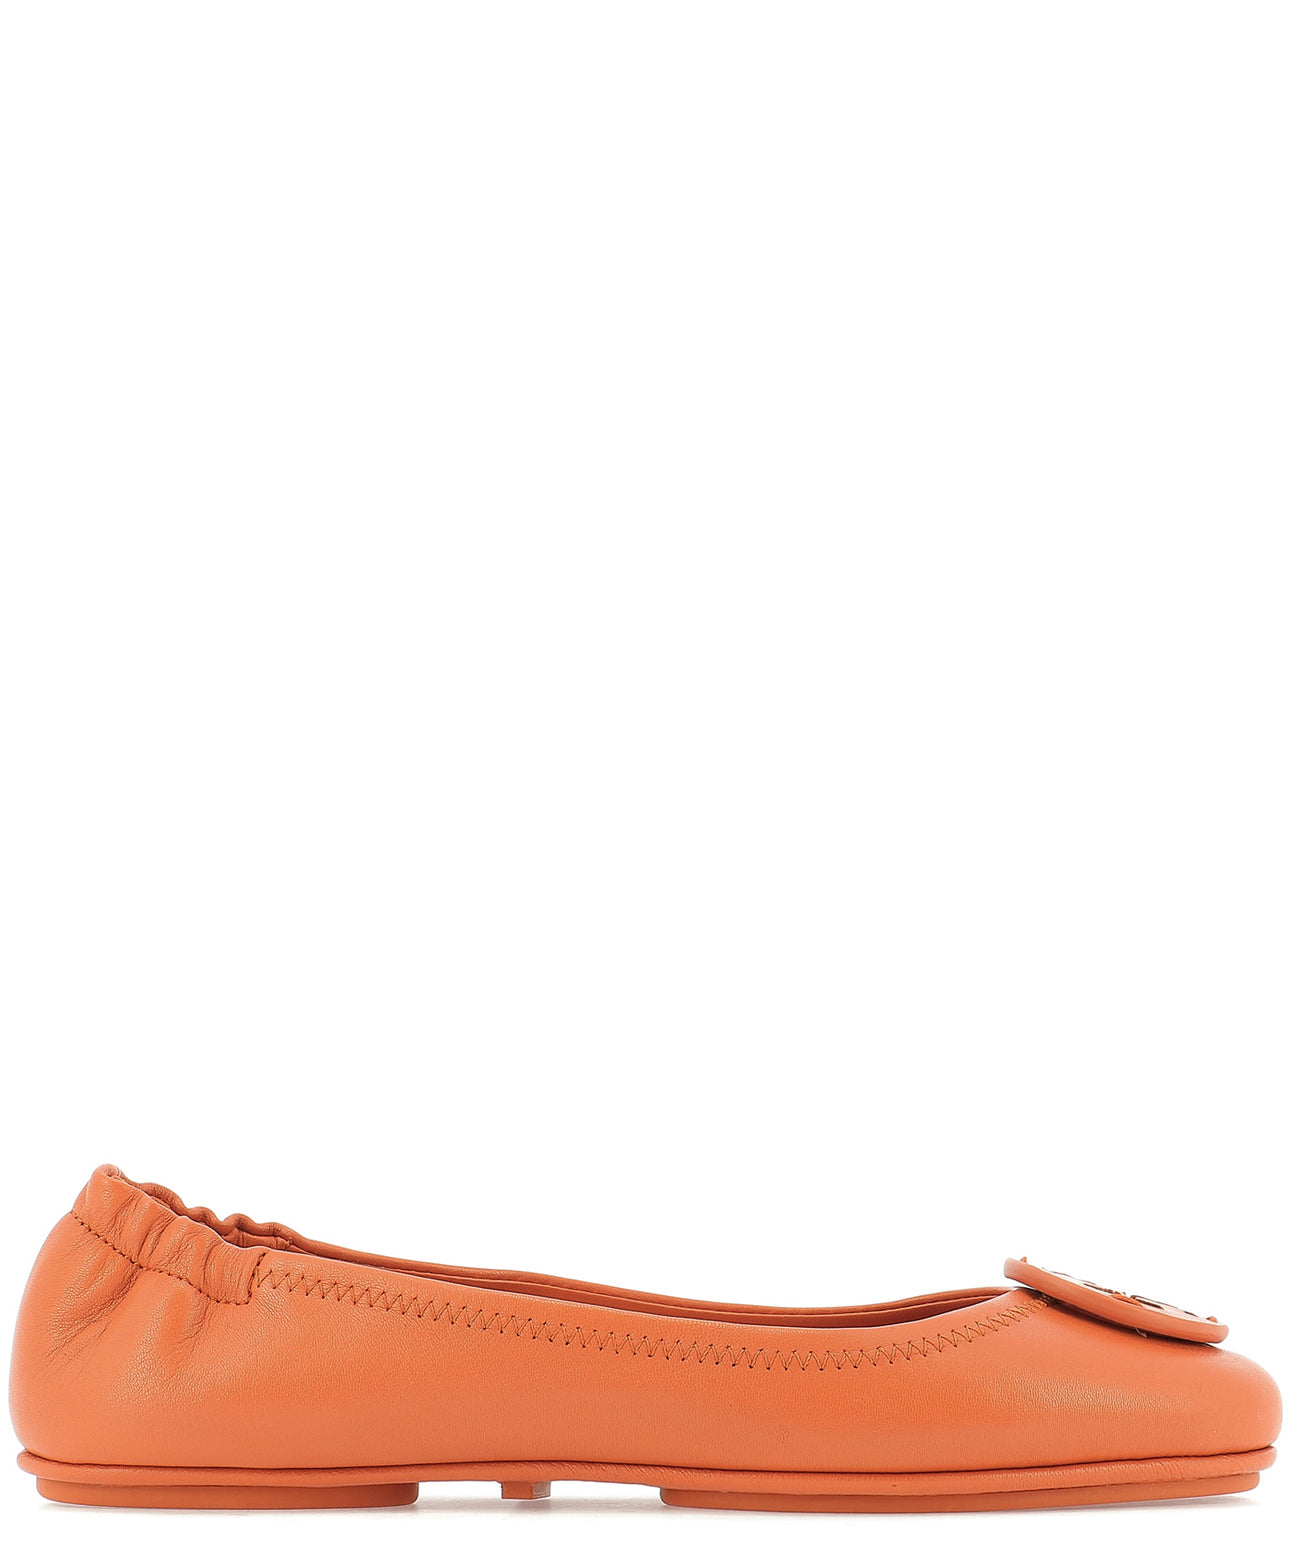 Tory Burch Shoes TORY BURCH MINNIE BALLERINAS